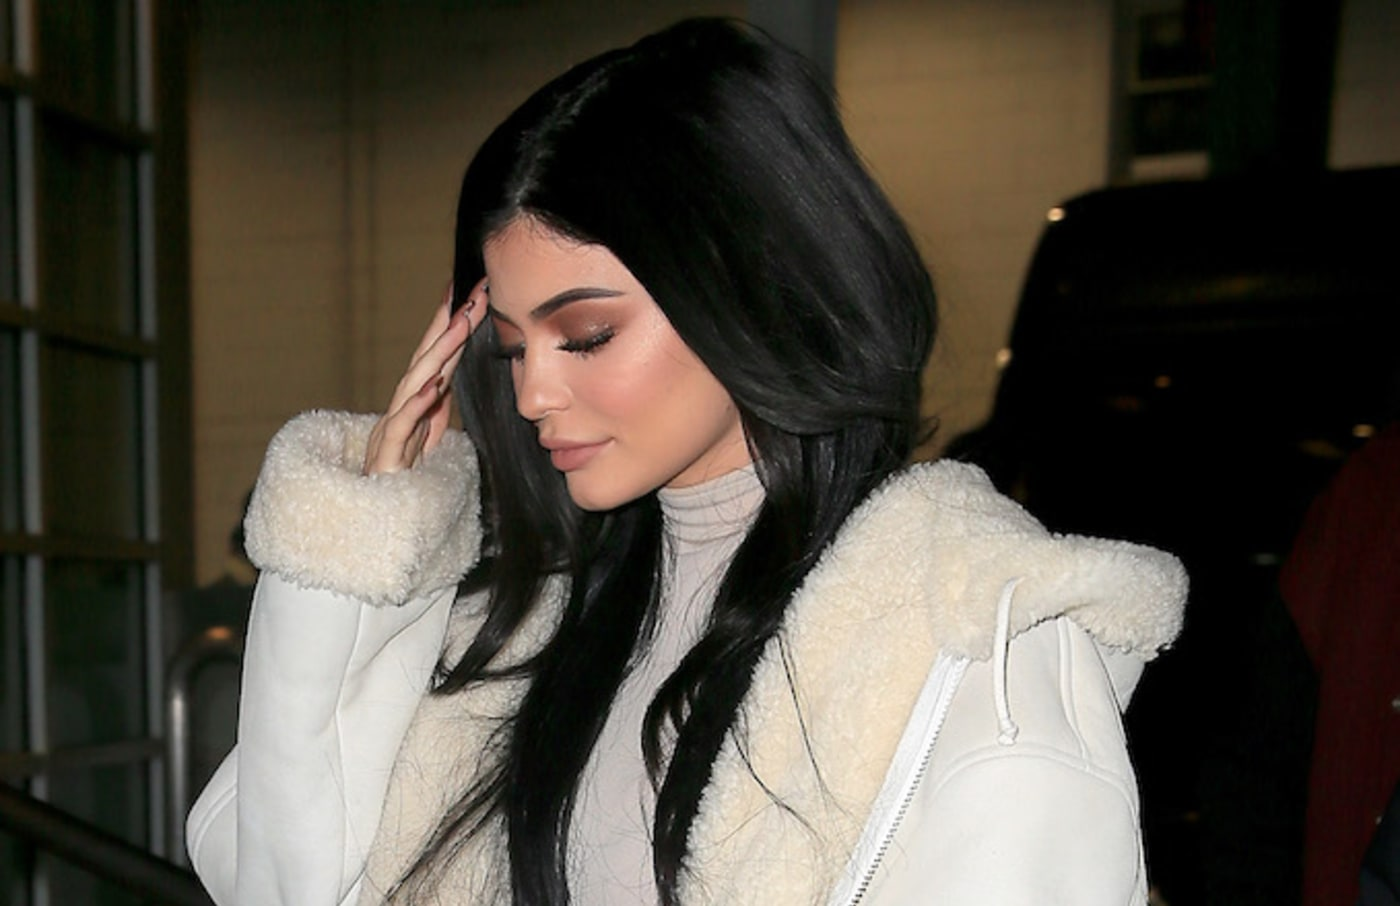 Kylie Jenner arrives at the Yeezy fashion show.